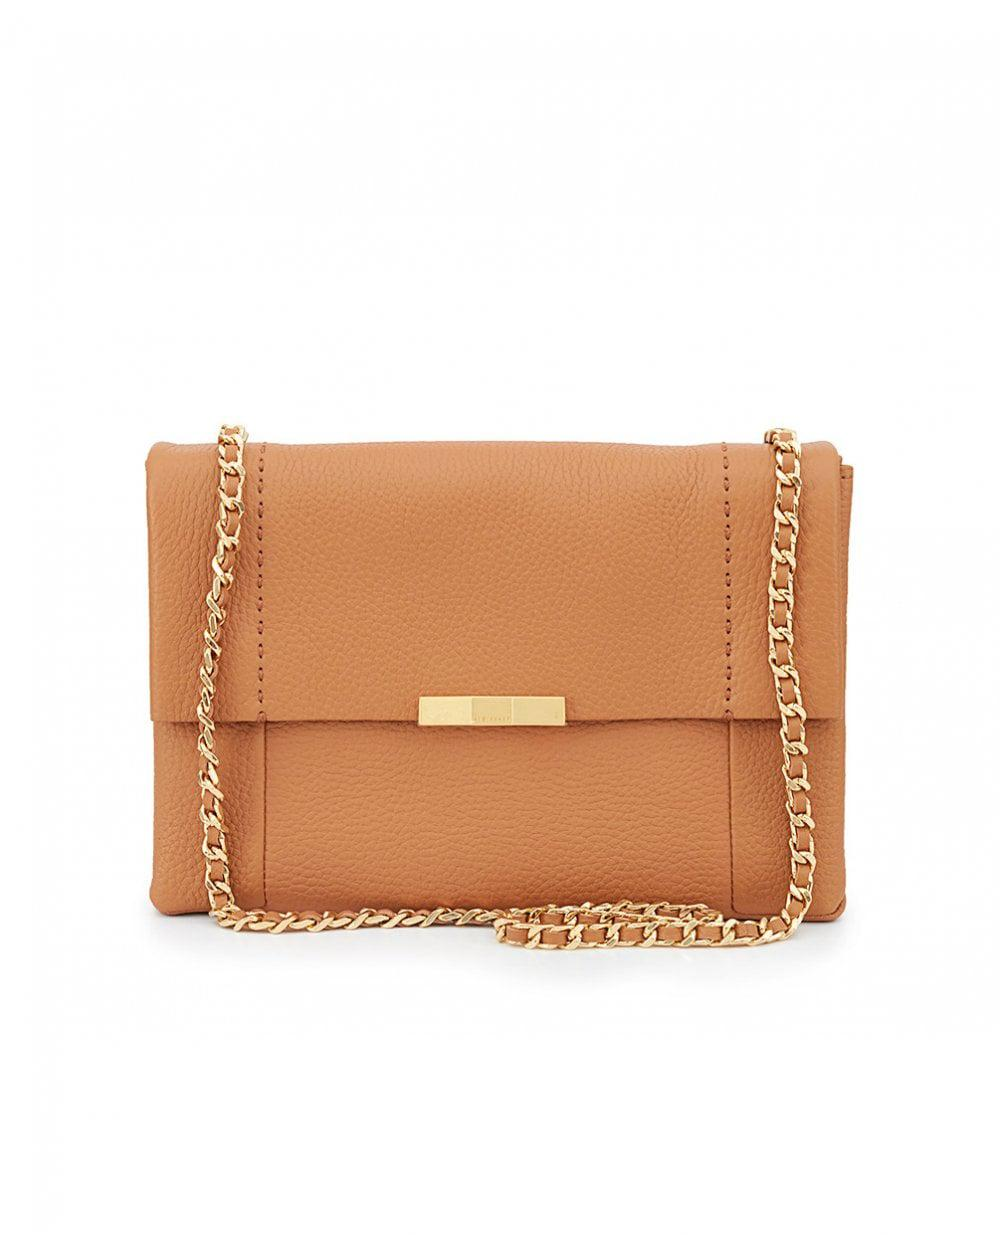 401d571e4485ae Lyst - Ted Baker Soft Leather Chain Shoulder Bag in Brown